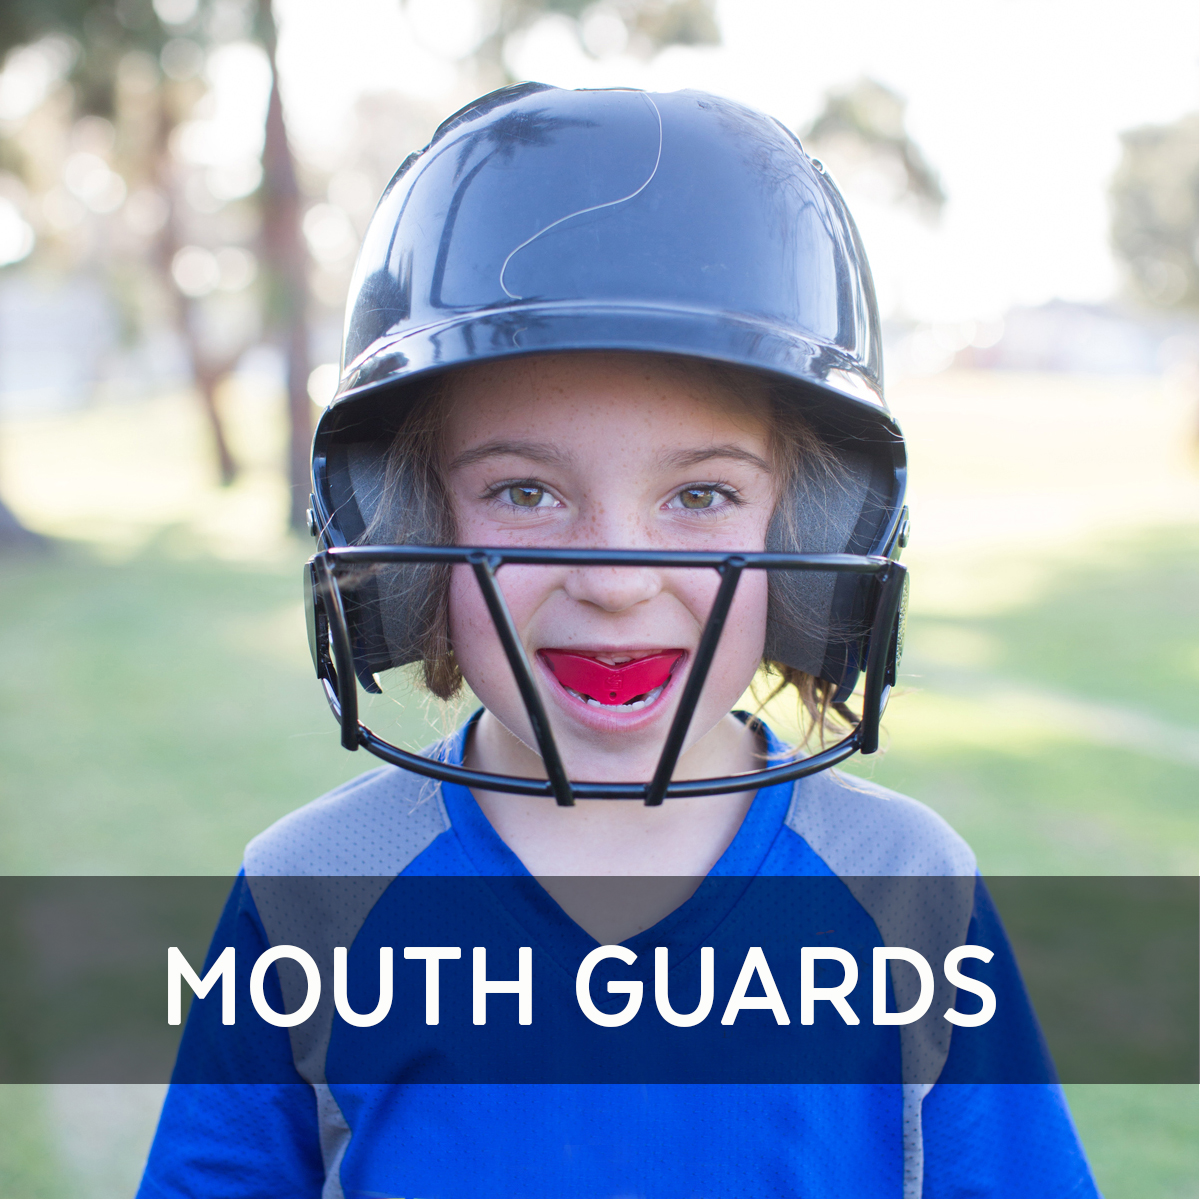 SLO MOUTH GUARDS.jpg